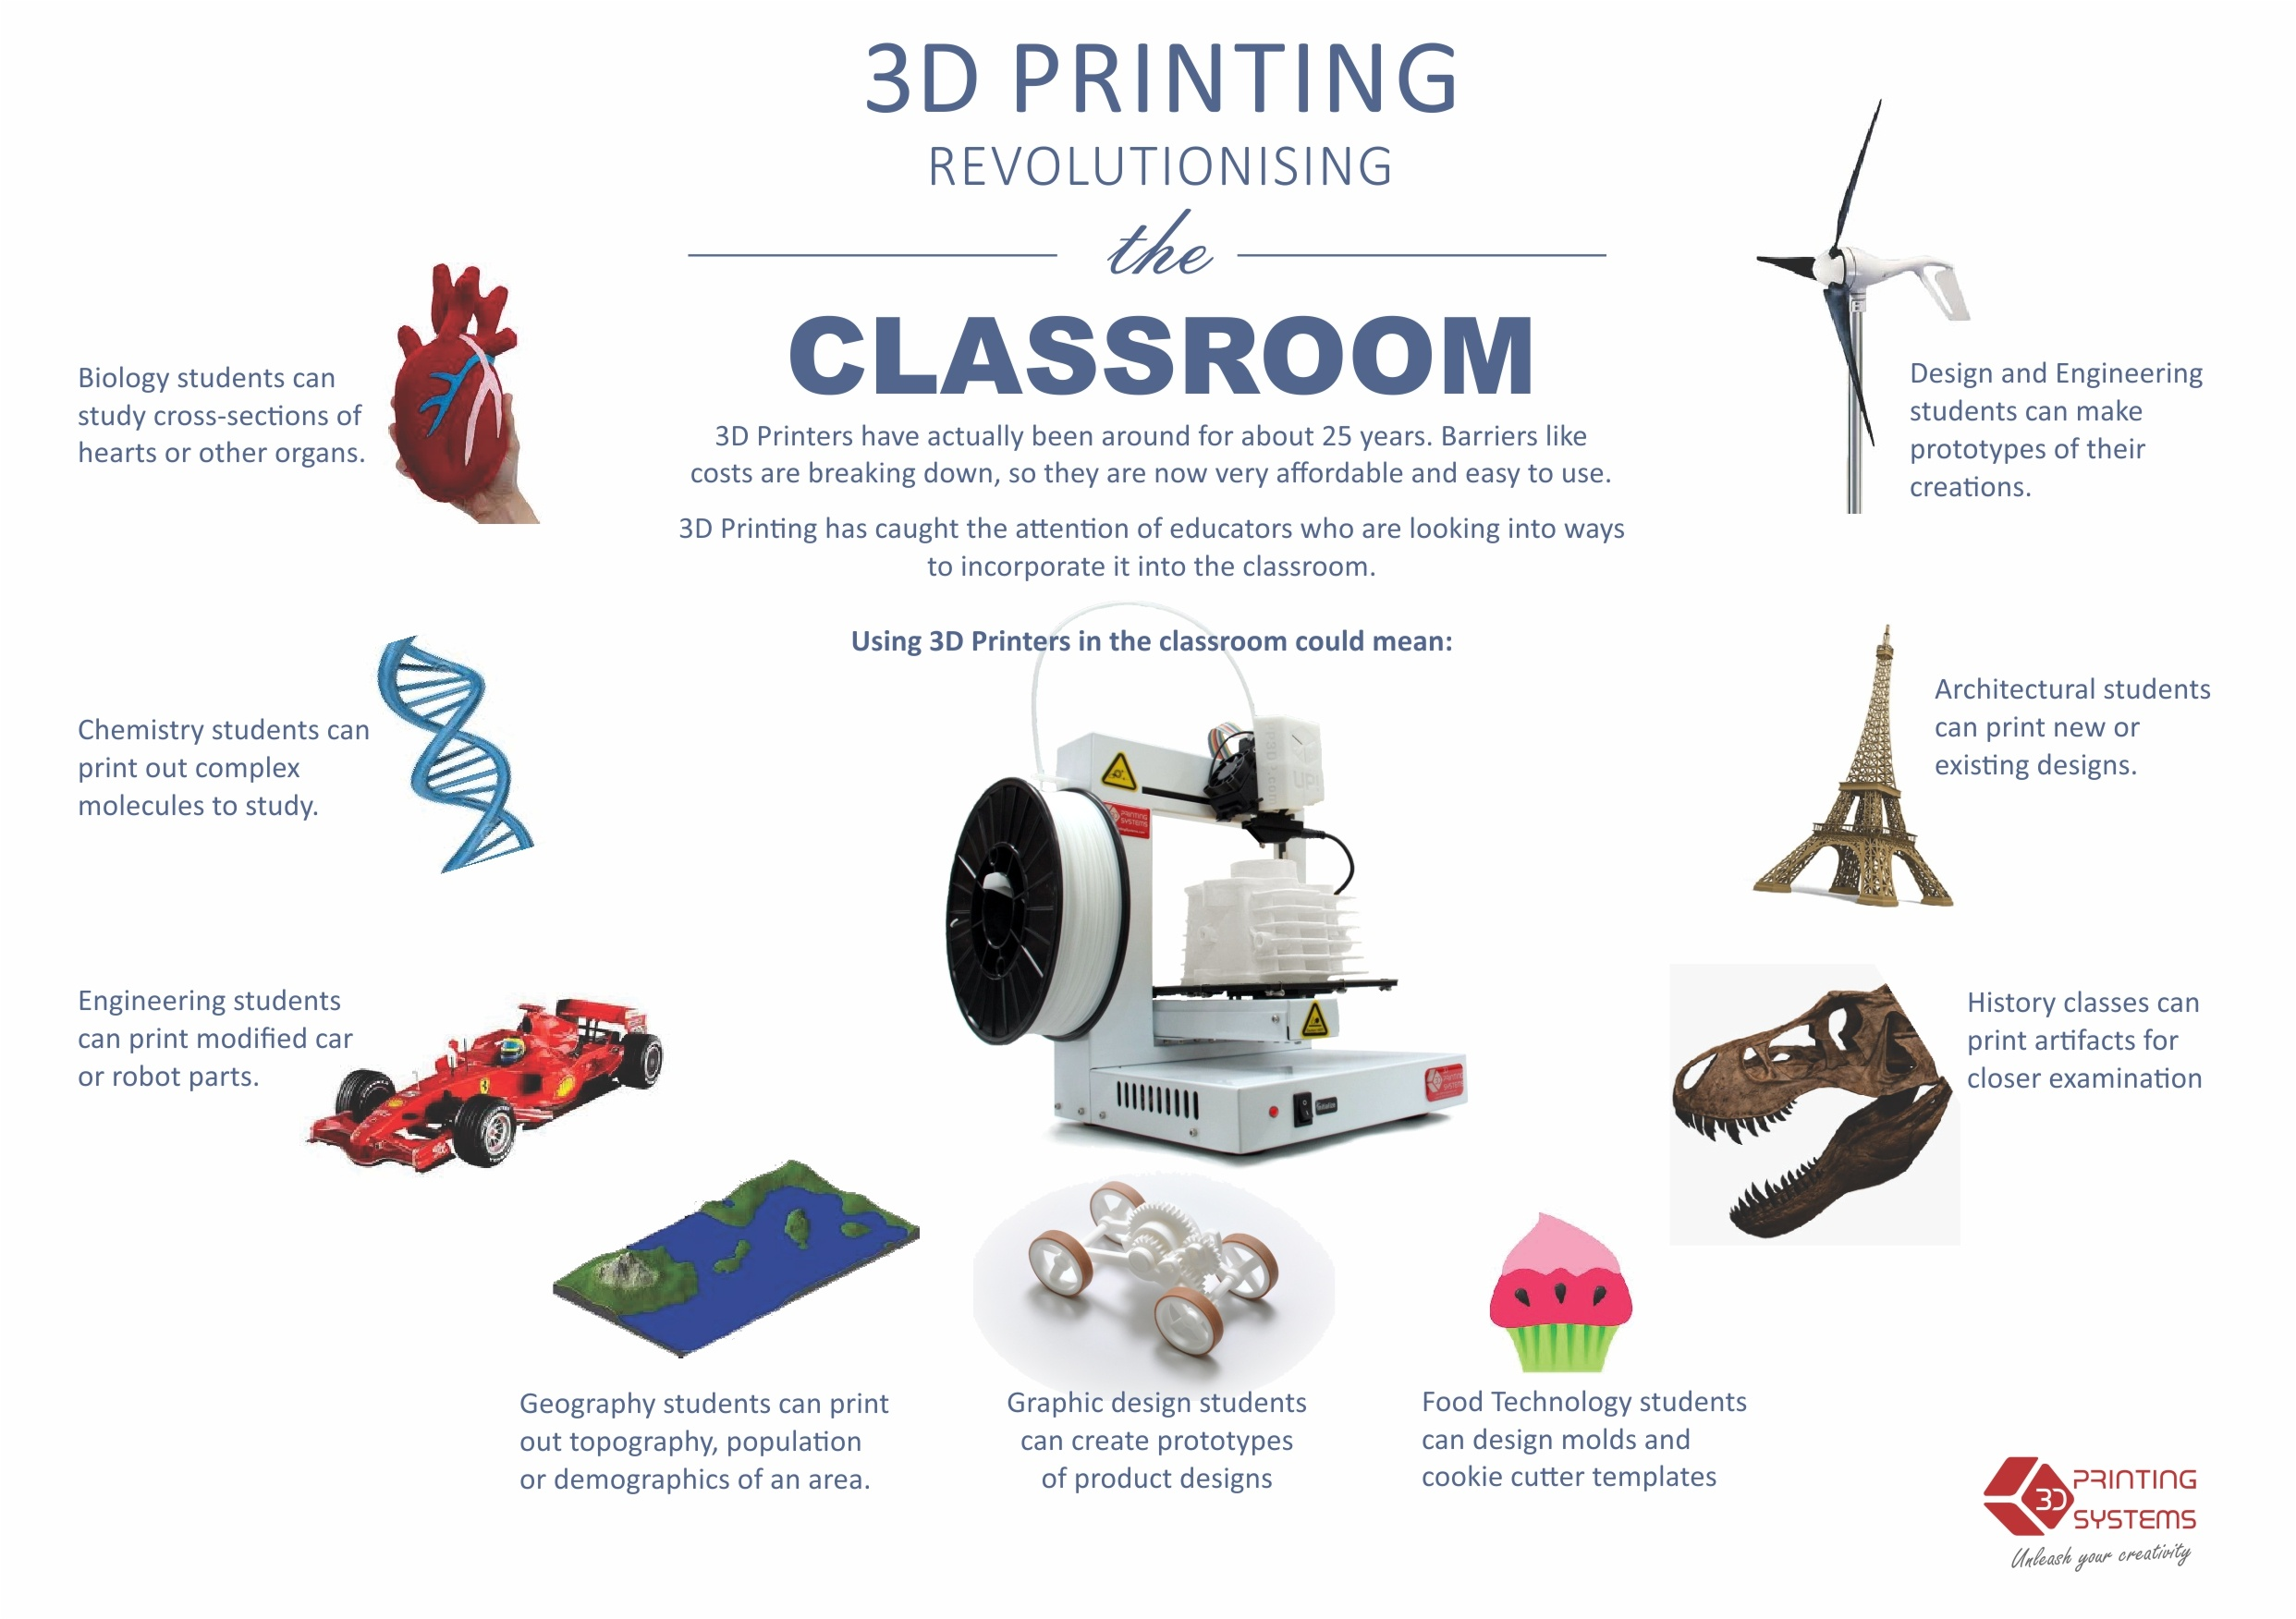 What is the scope of 3d printing in India? - Quora